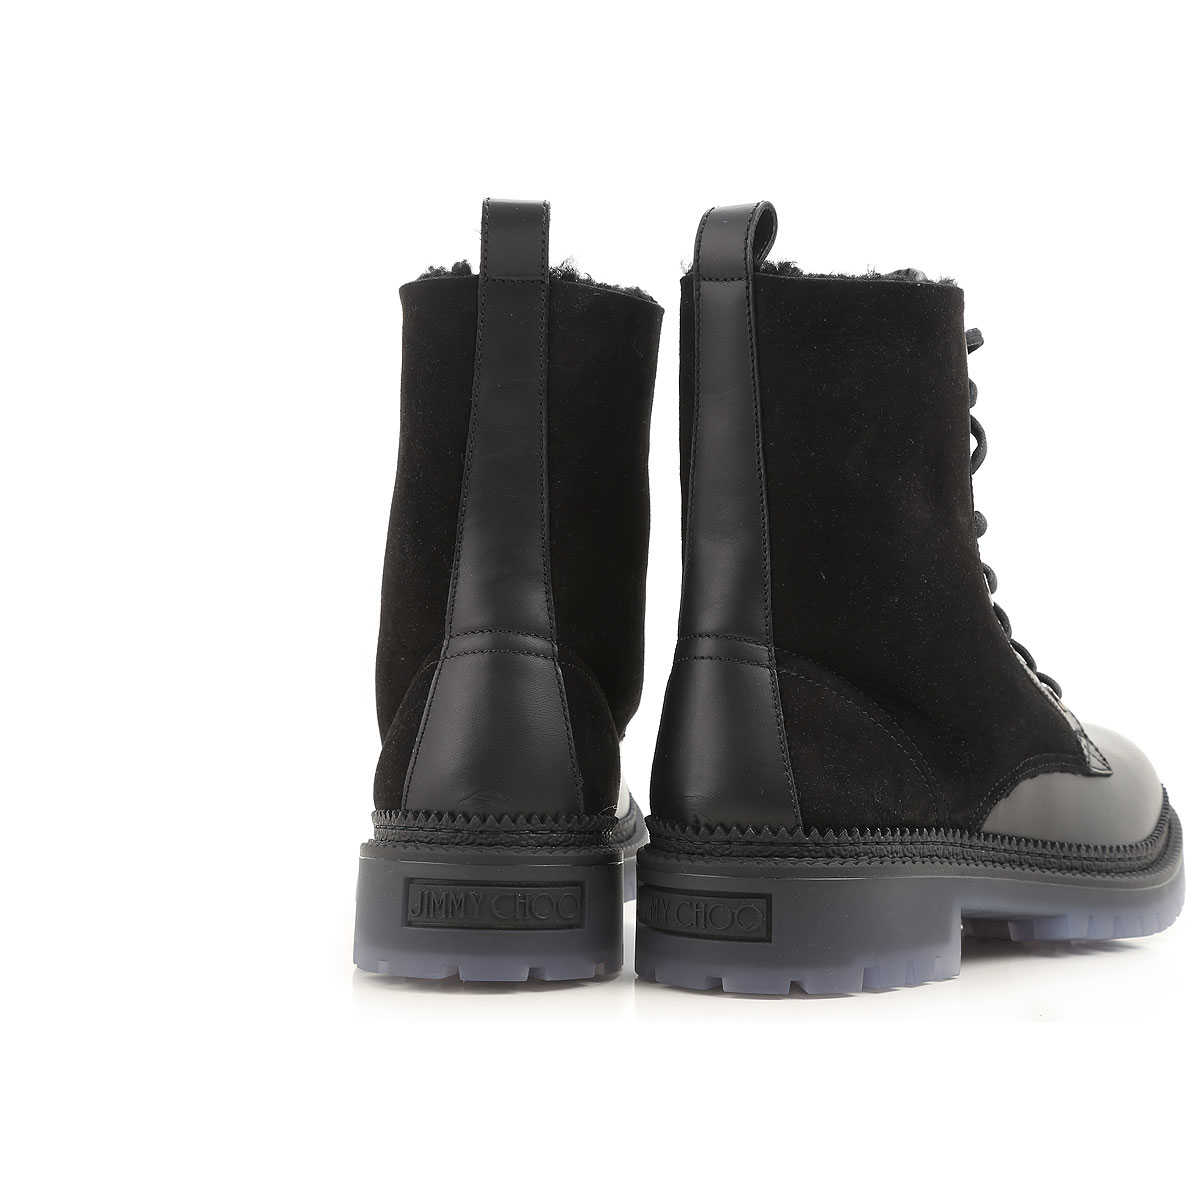 Jimmy Choo Boots for Men Booties On Sale in Outlet SE - GOOFASH